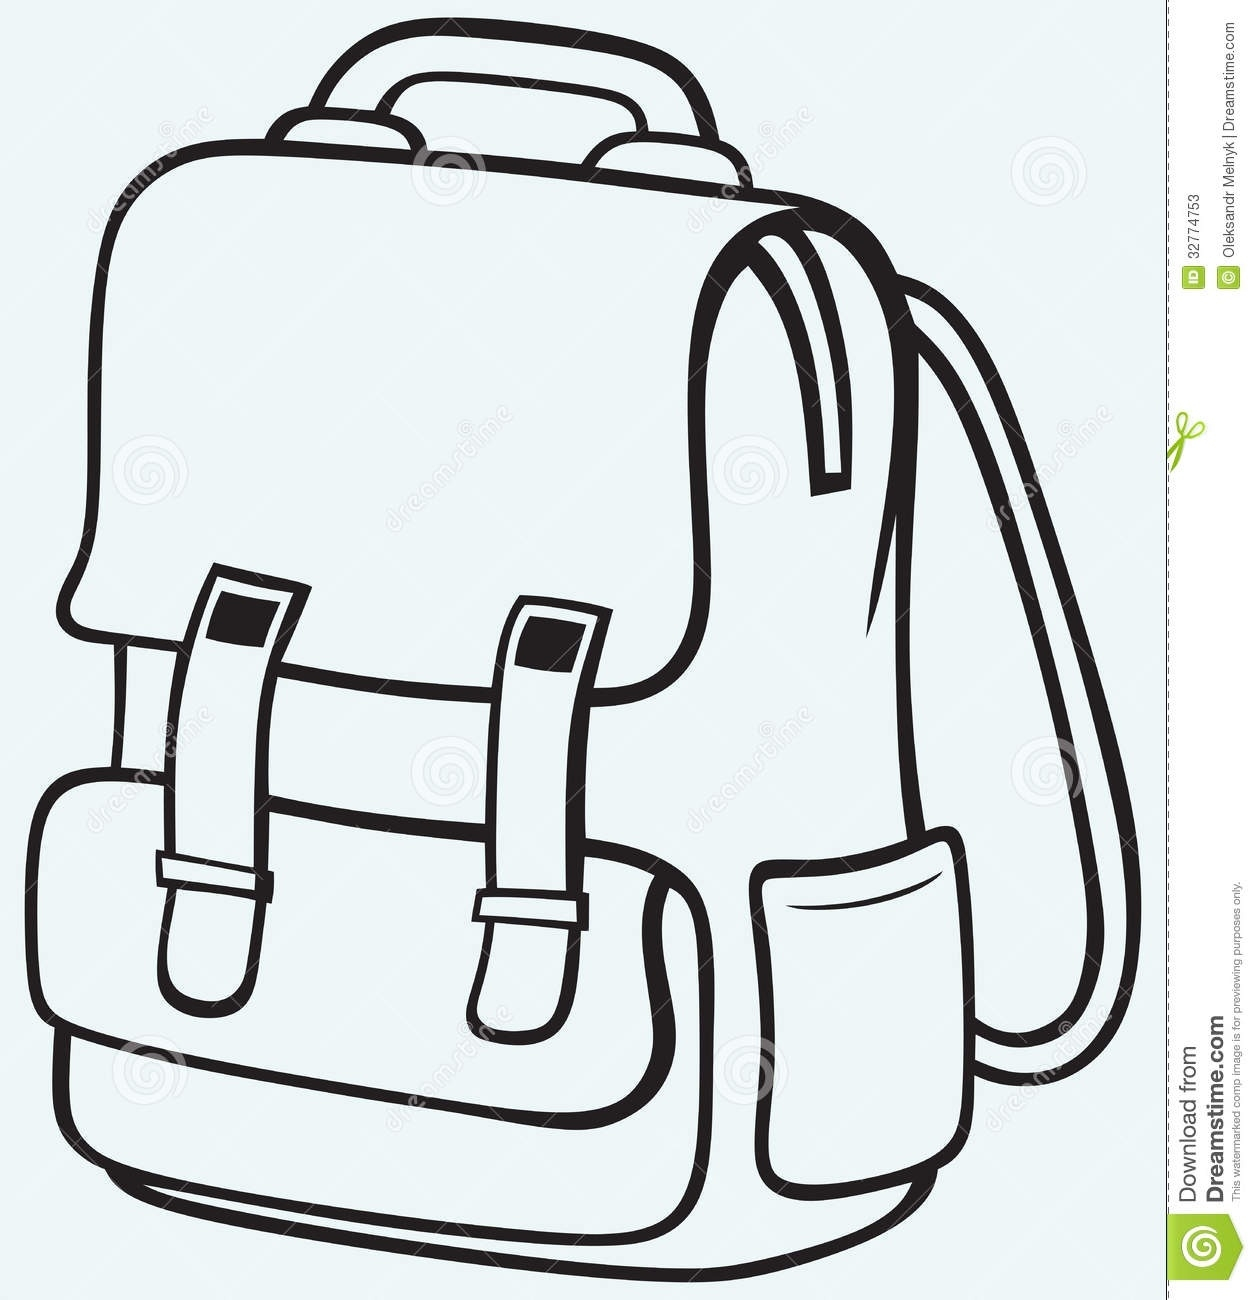 Backpack clipart plain. Black and white letters